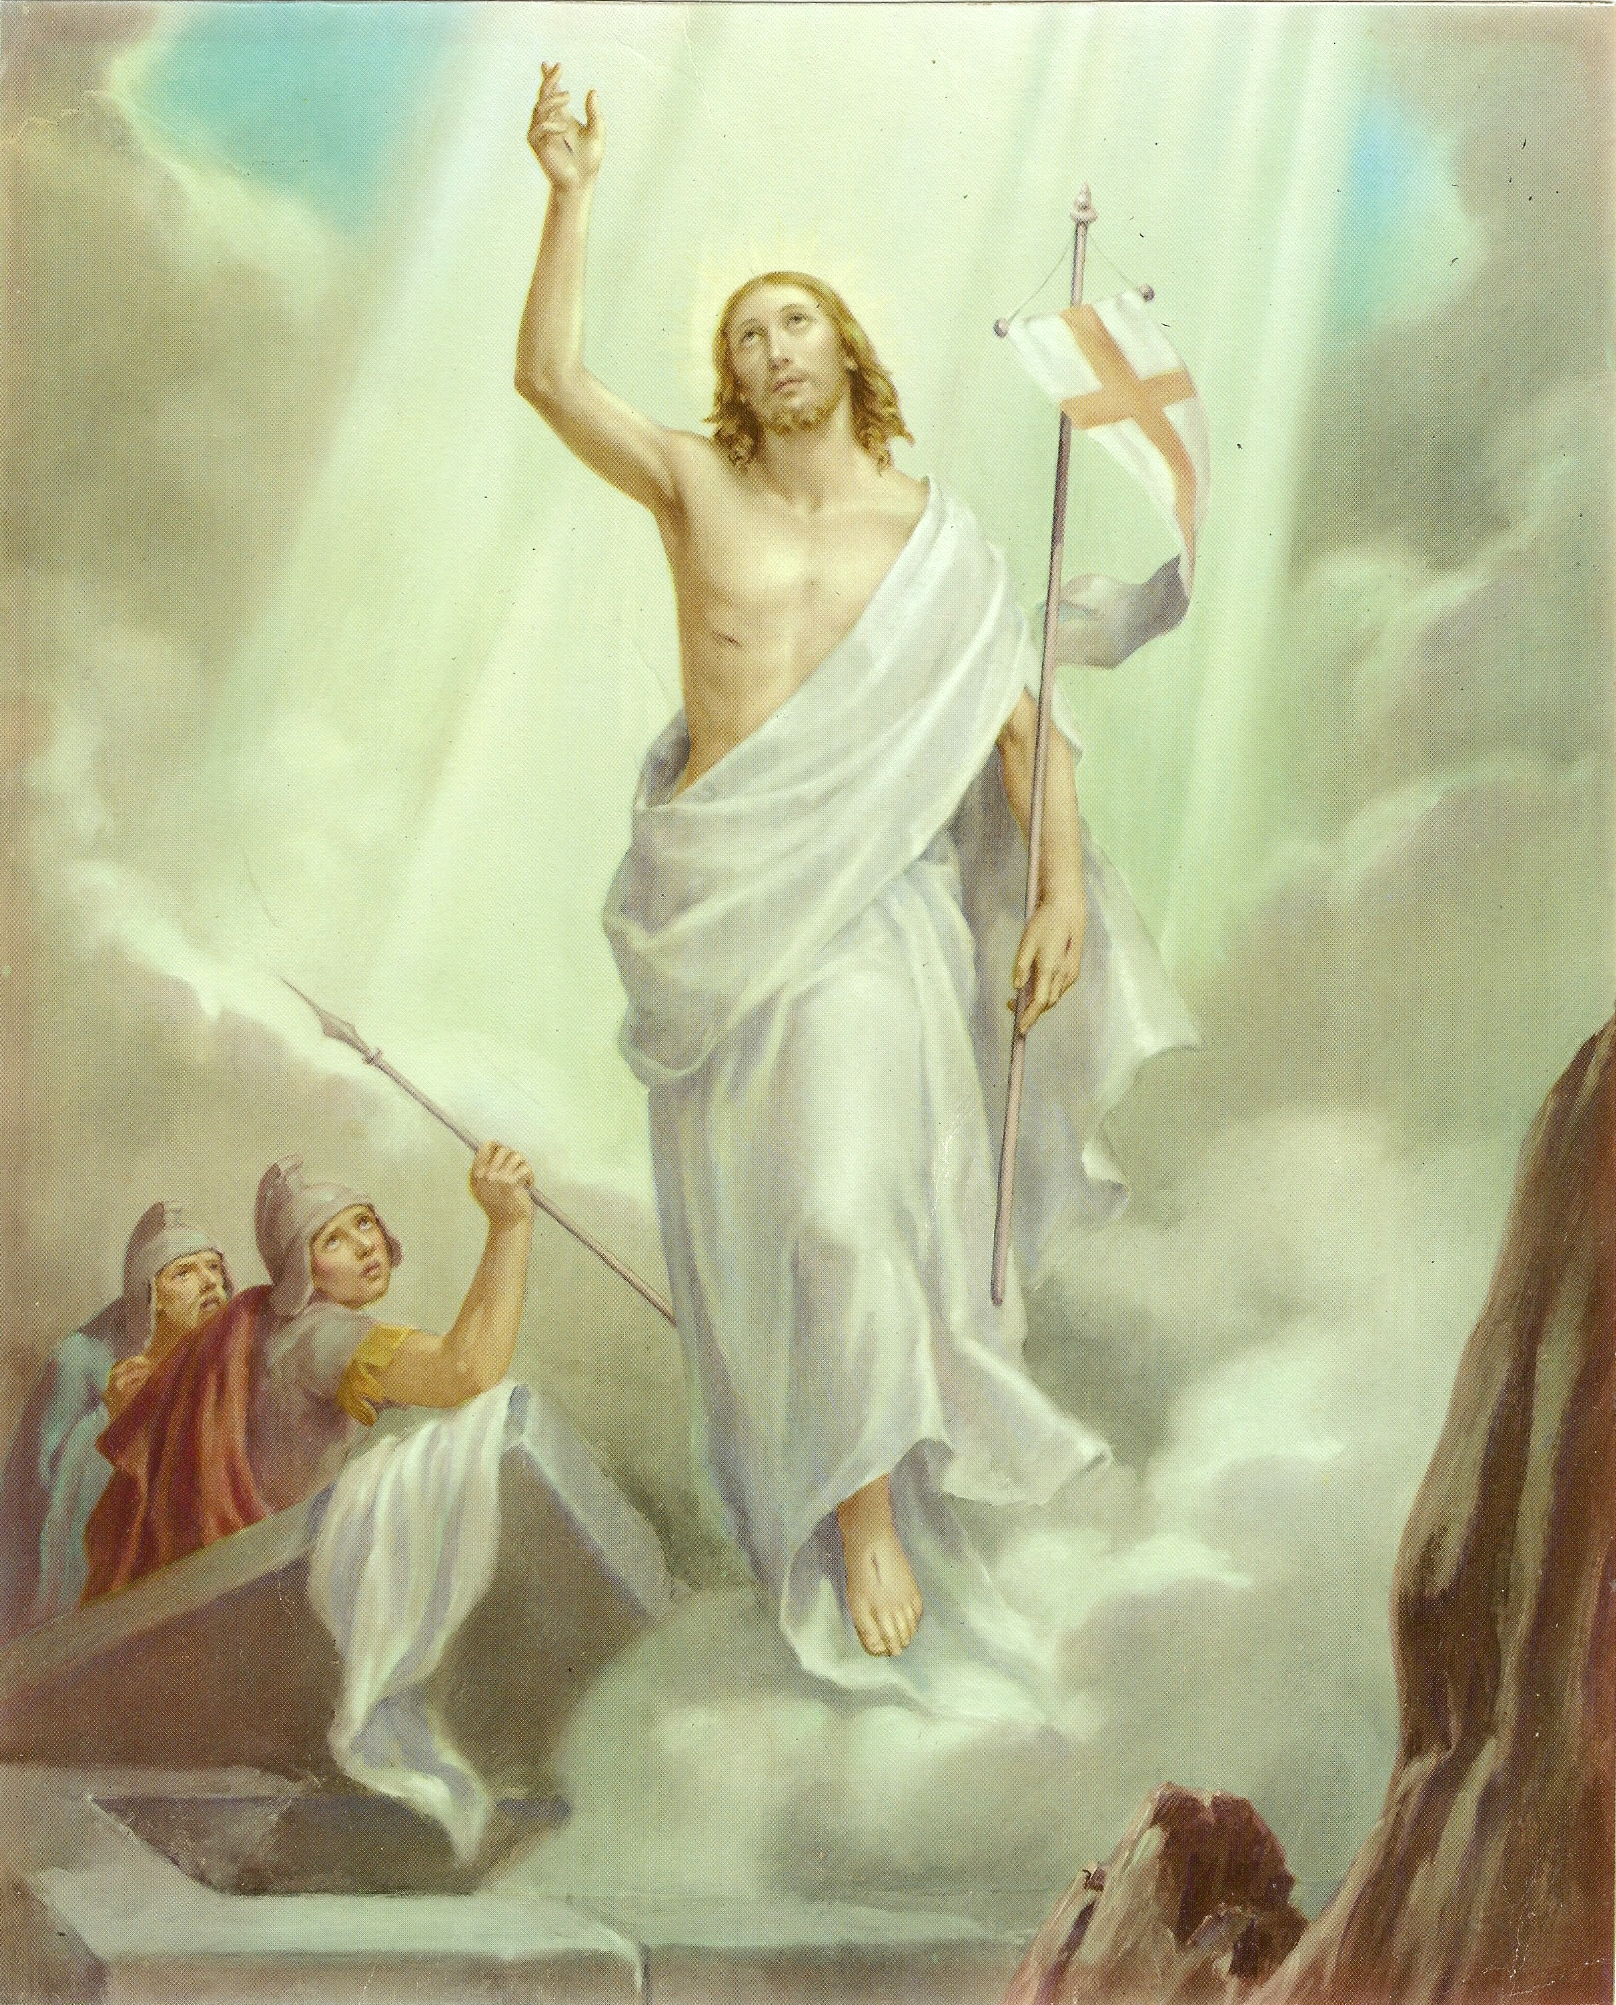 Le Rosaire en Images - Page 2 11--la-r-surrection-559d5f7